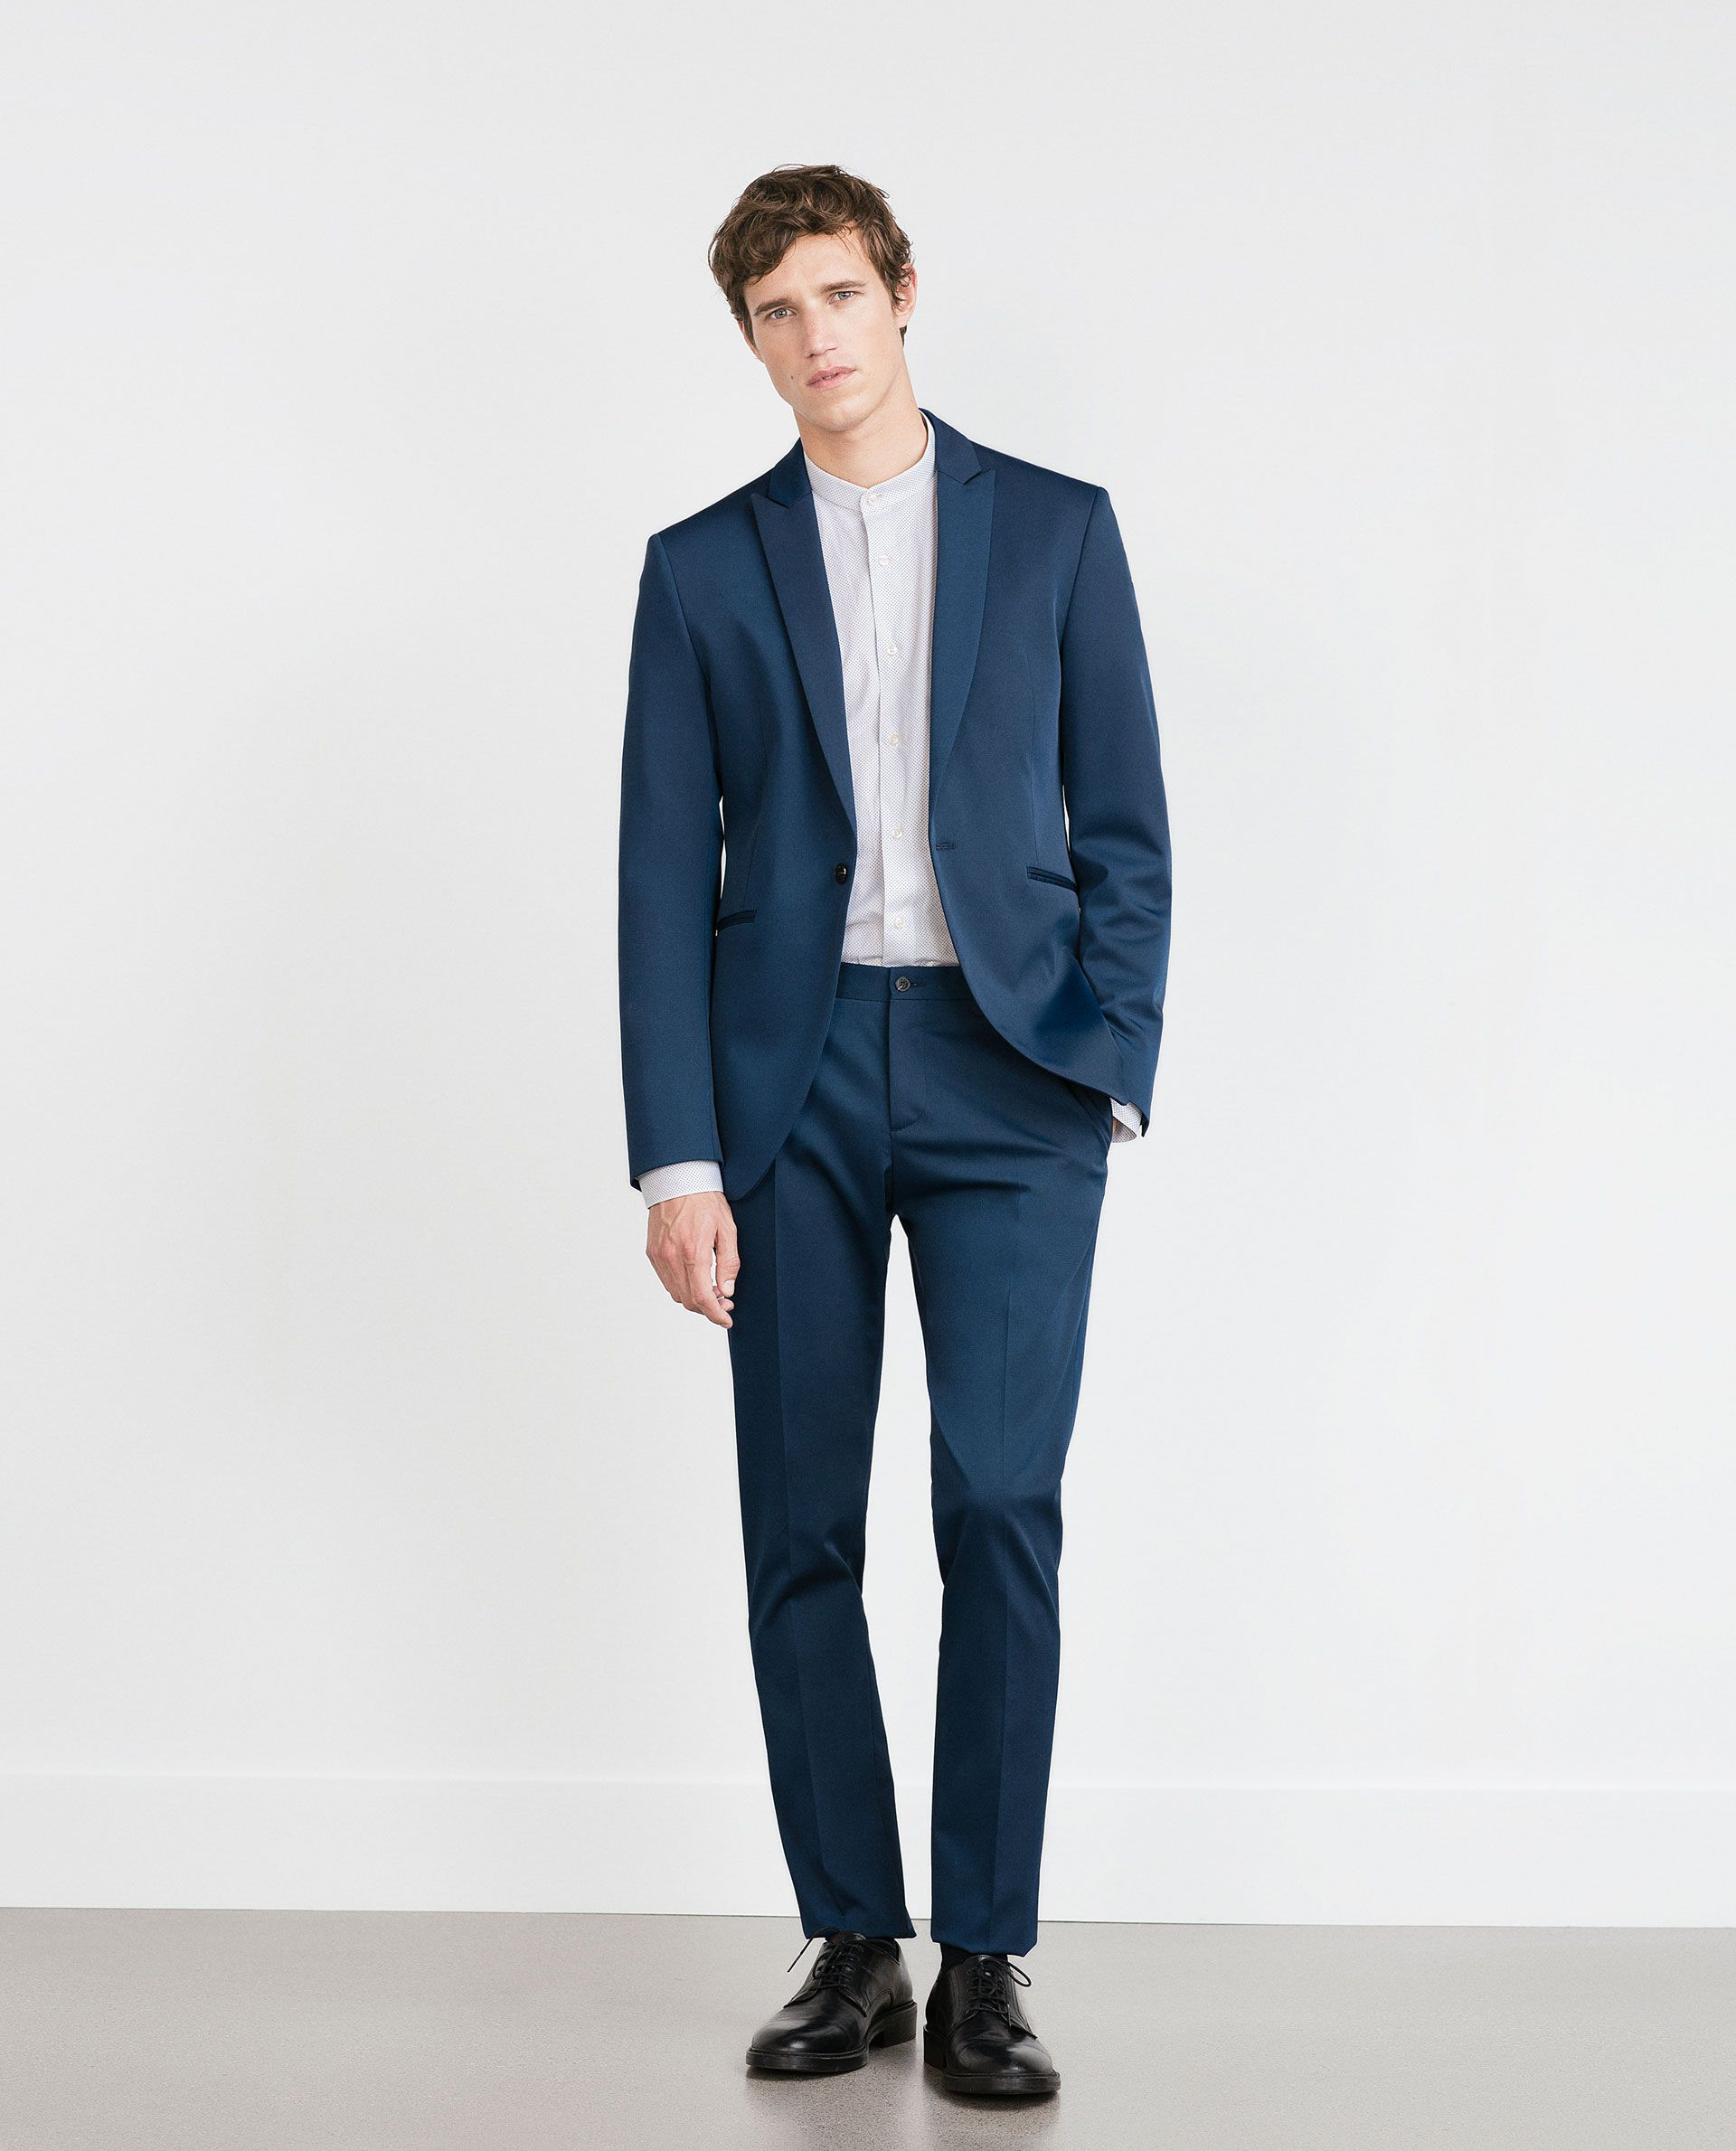 Image 2 of TECHNICAL FABRIC SUIT from Zara | Grooms | Pinterest ...